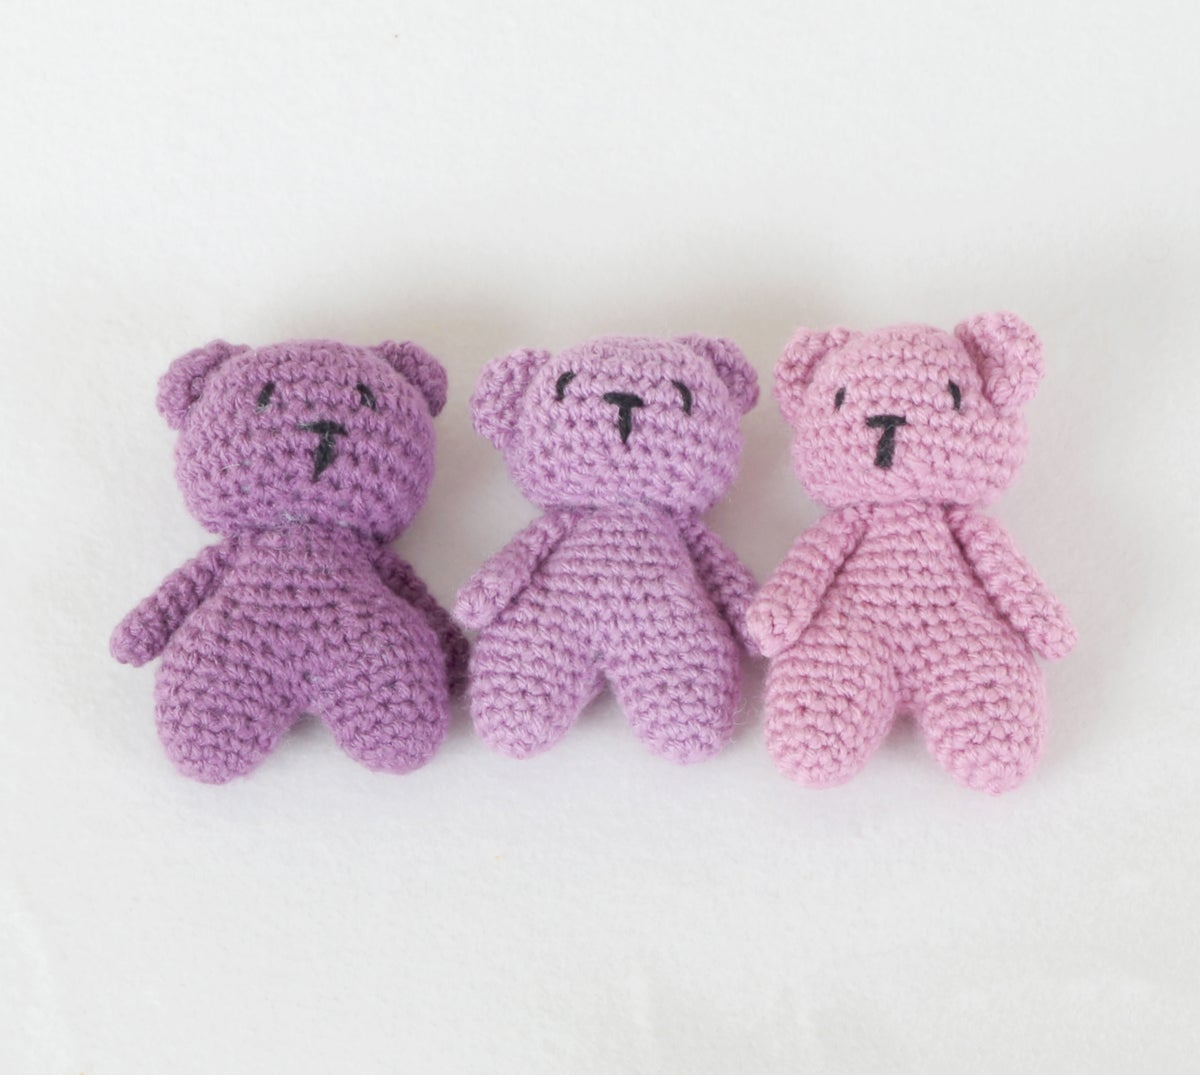 Newborn Teddy Bears - Set of 3 (Girls)